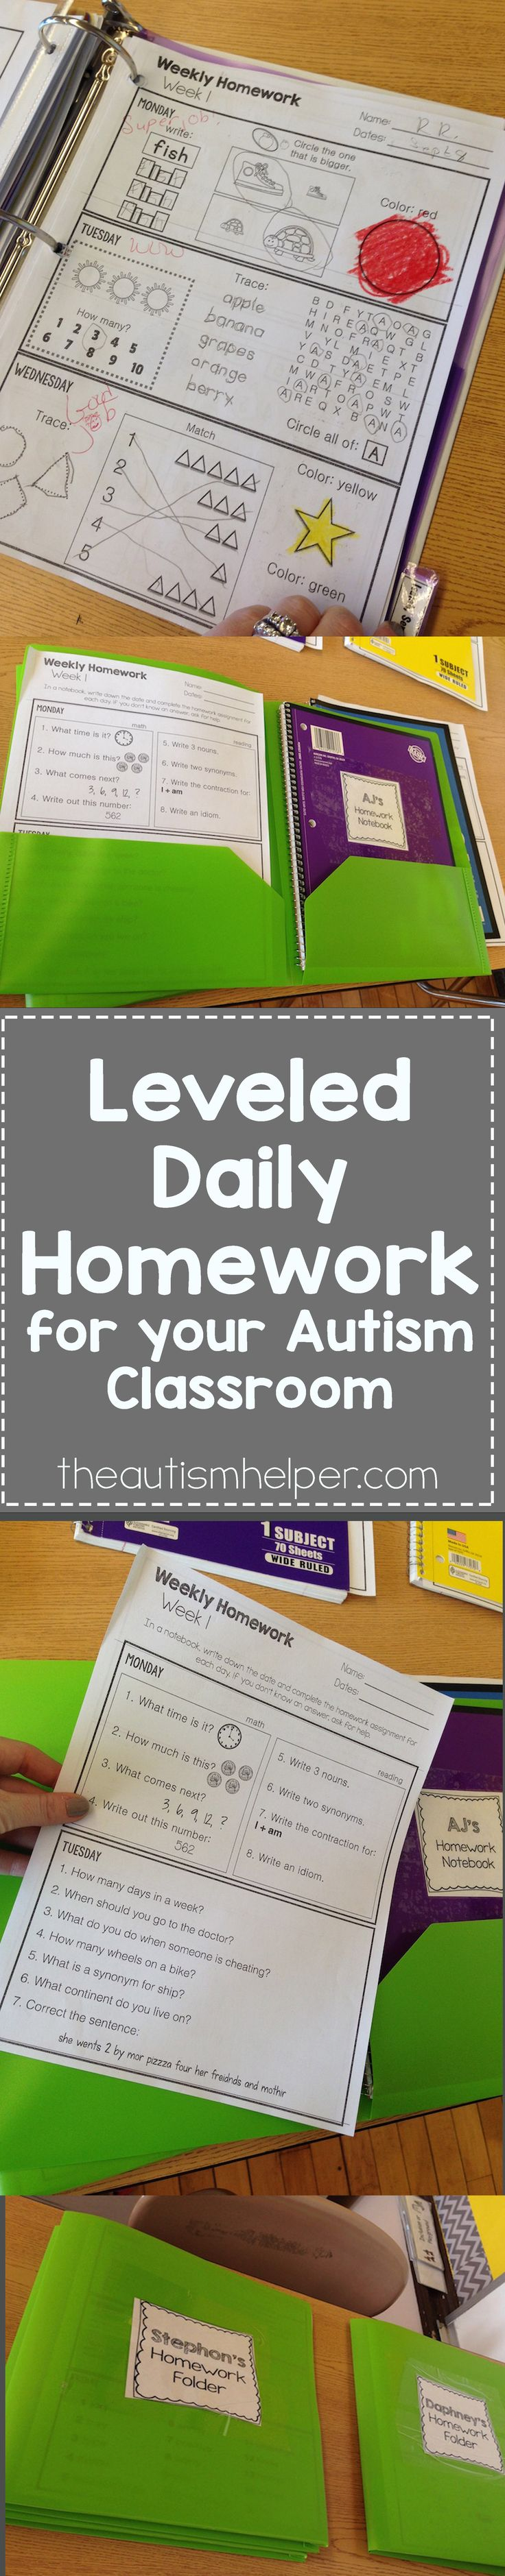 My Leveled Homework resource will last you seamlessly from August to June – the ENTIRE school year! Each of the 3 levels contains 36 weekly homework packets & each packet has different work for each day of the week! Print once, make copies, & prep work is done. SO simple!! From theautismhelper.com #theautismhelper